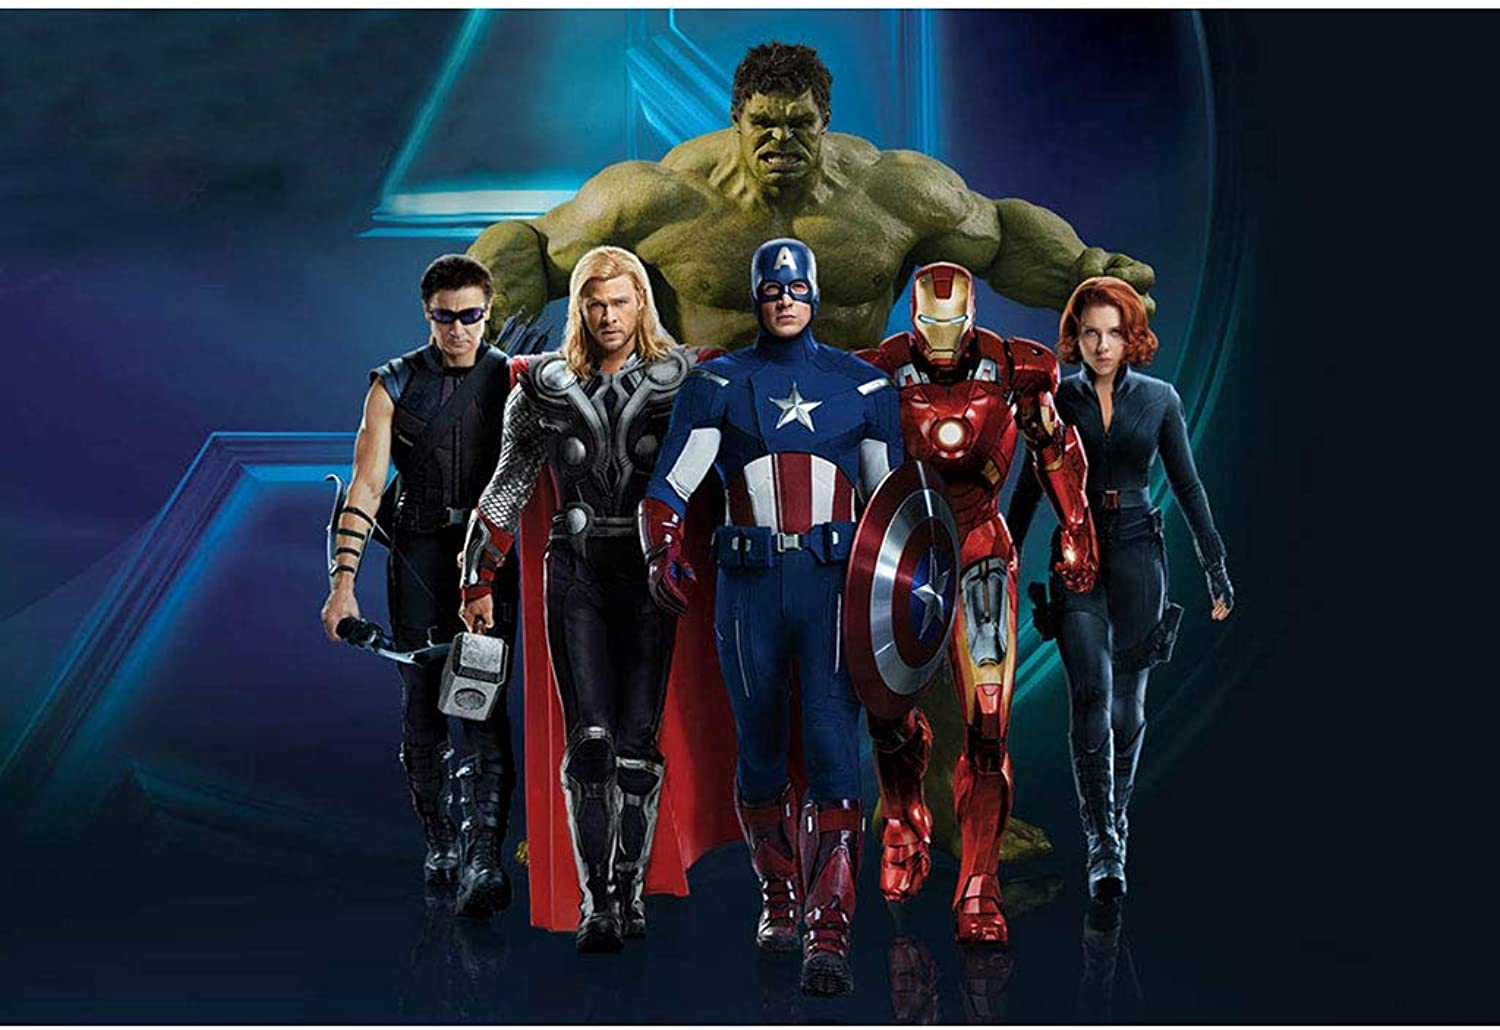 Erwachsene Puzzles, Avengers Poster Puzzle, Infinity War Movie Stills, Holzpuzzle 300.500.1000 Teile,A,500PCS